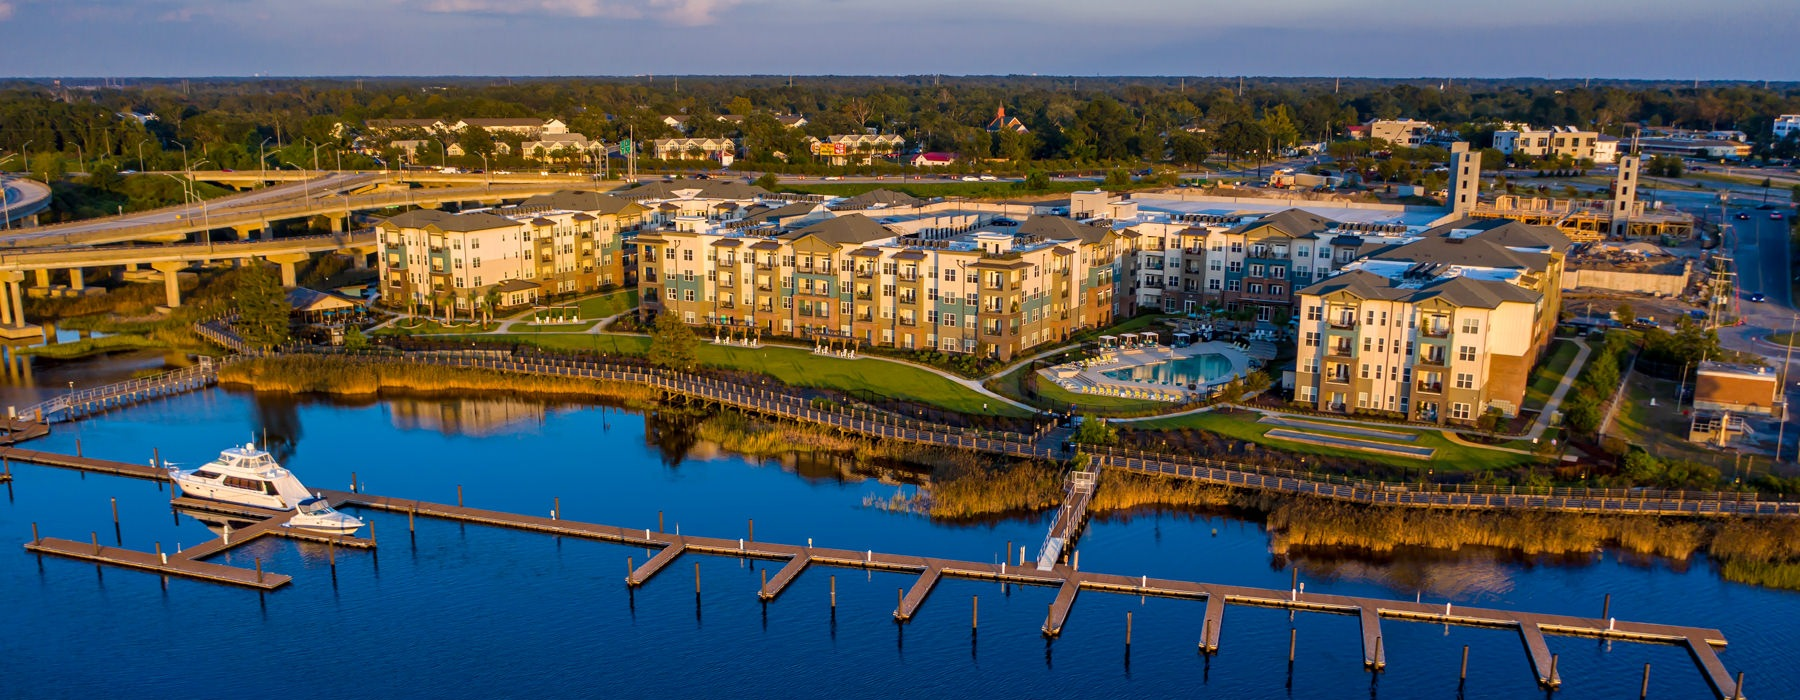 Marina on Cape Fear River located right next to Sawmill point complex